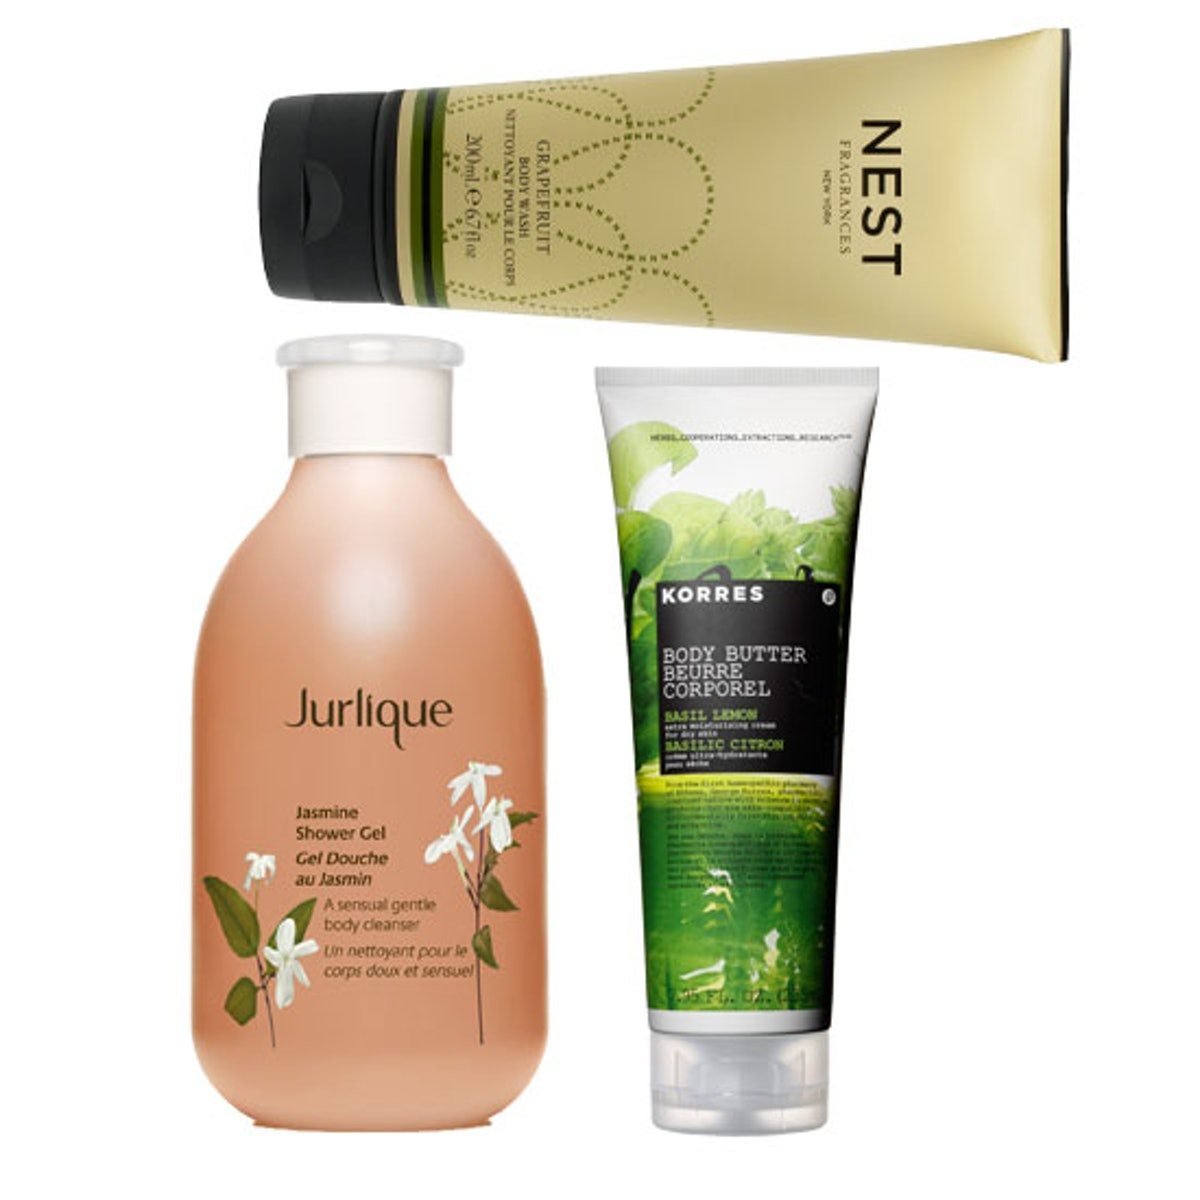 blog-great-smelling-products-01.jpg